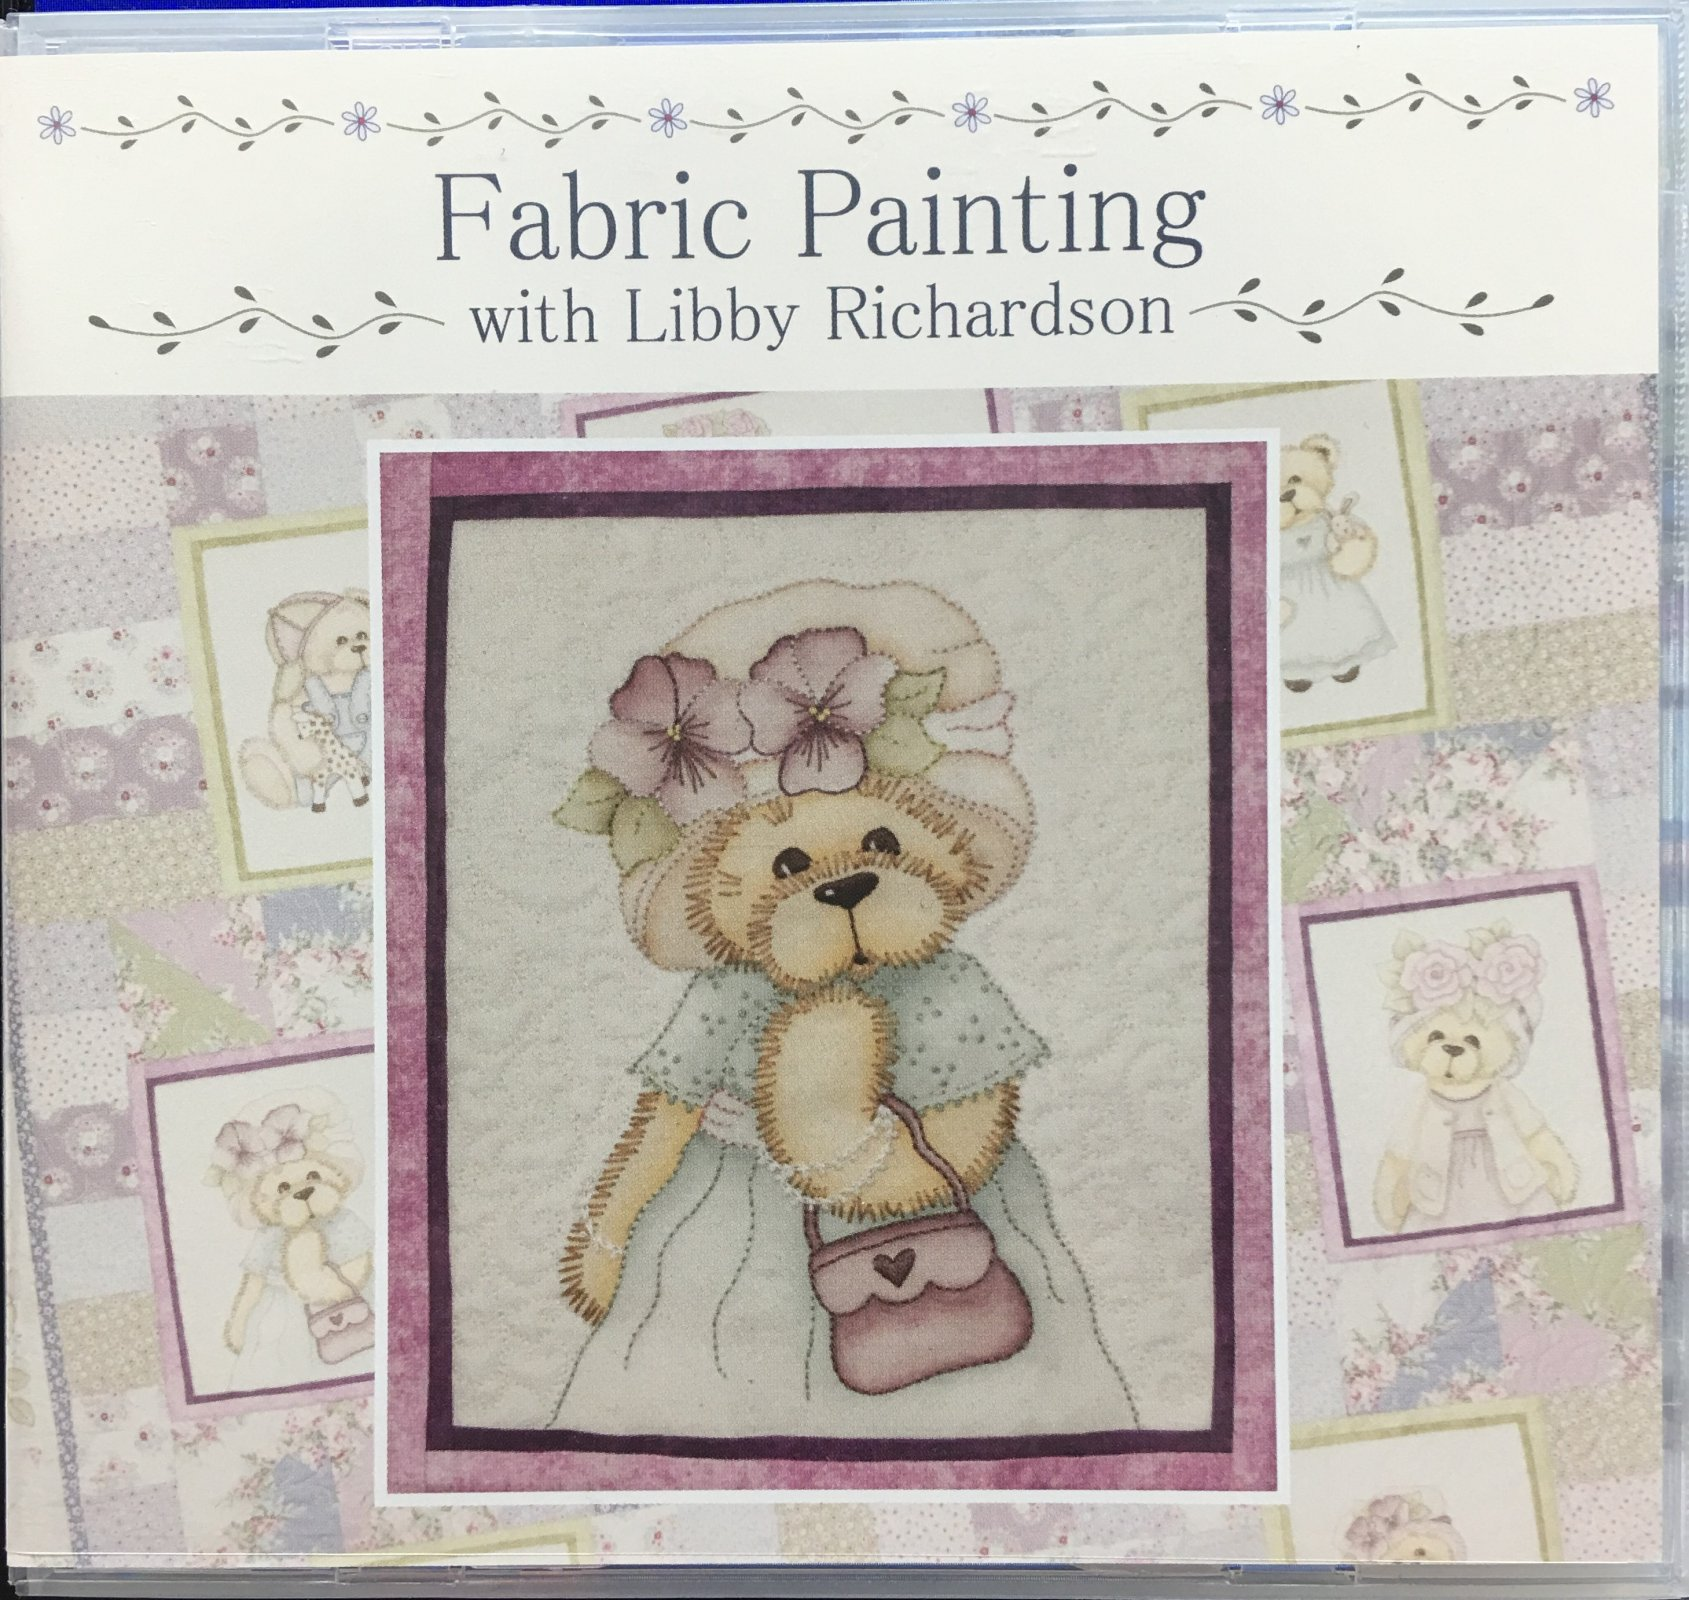 Fabric Painting DVD with Libby Richardson